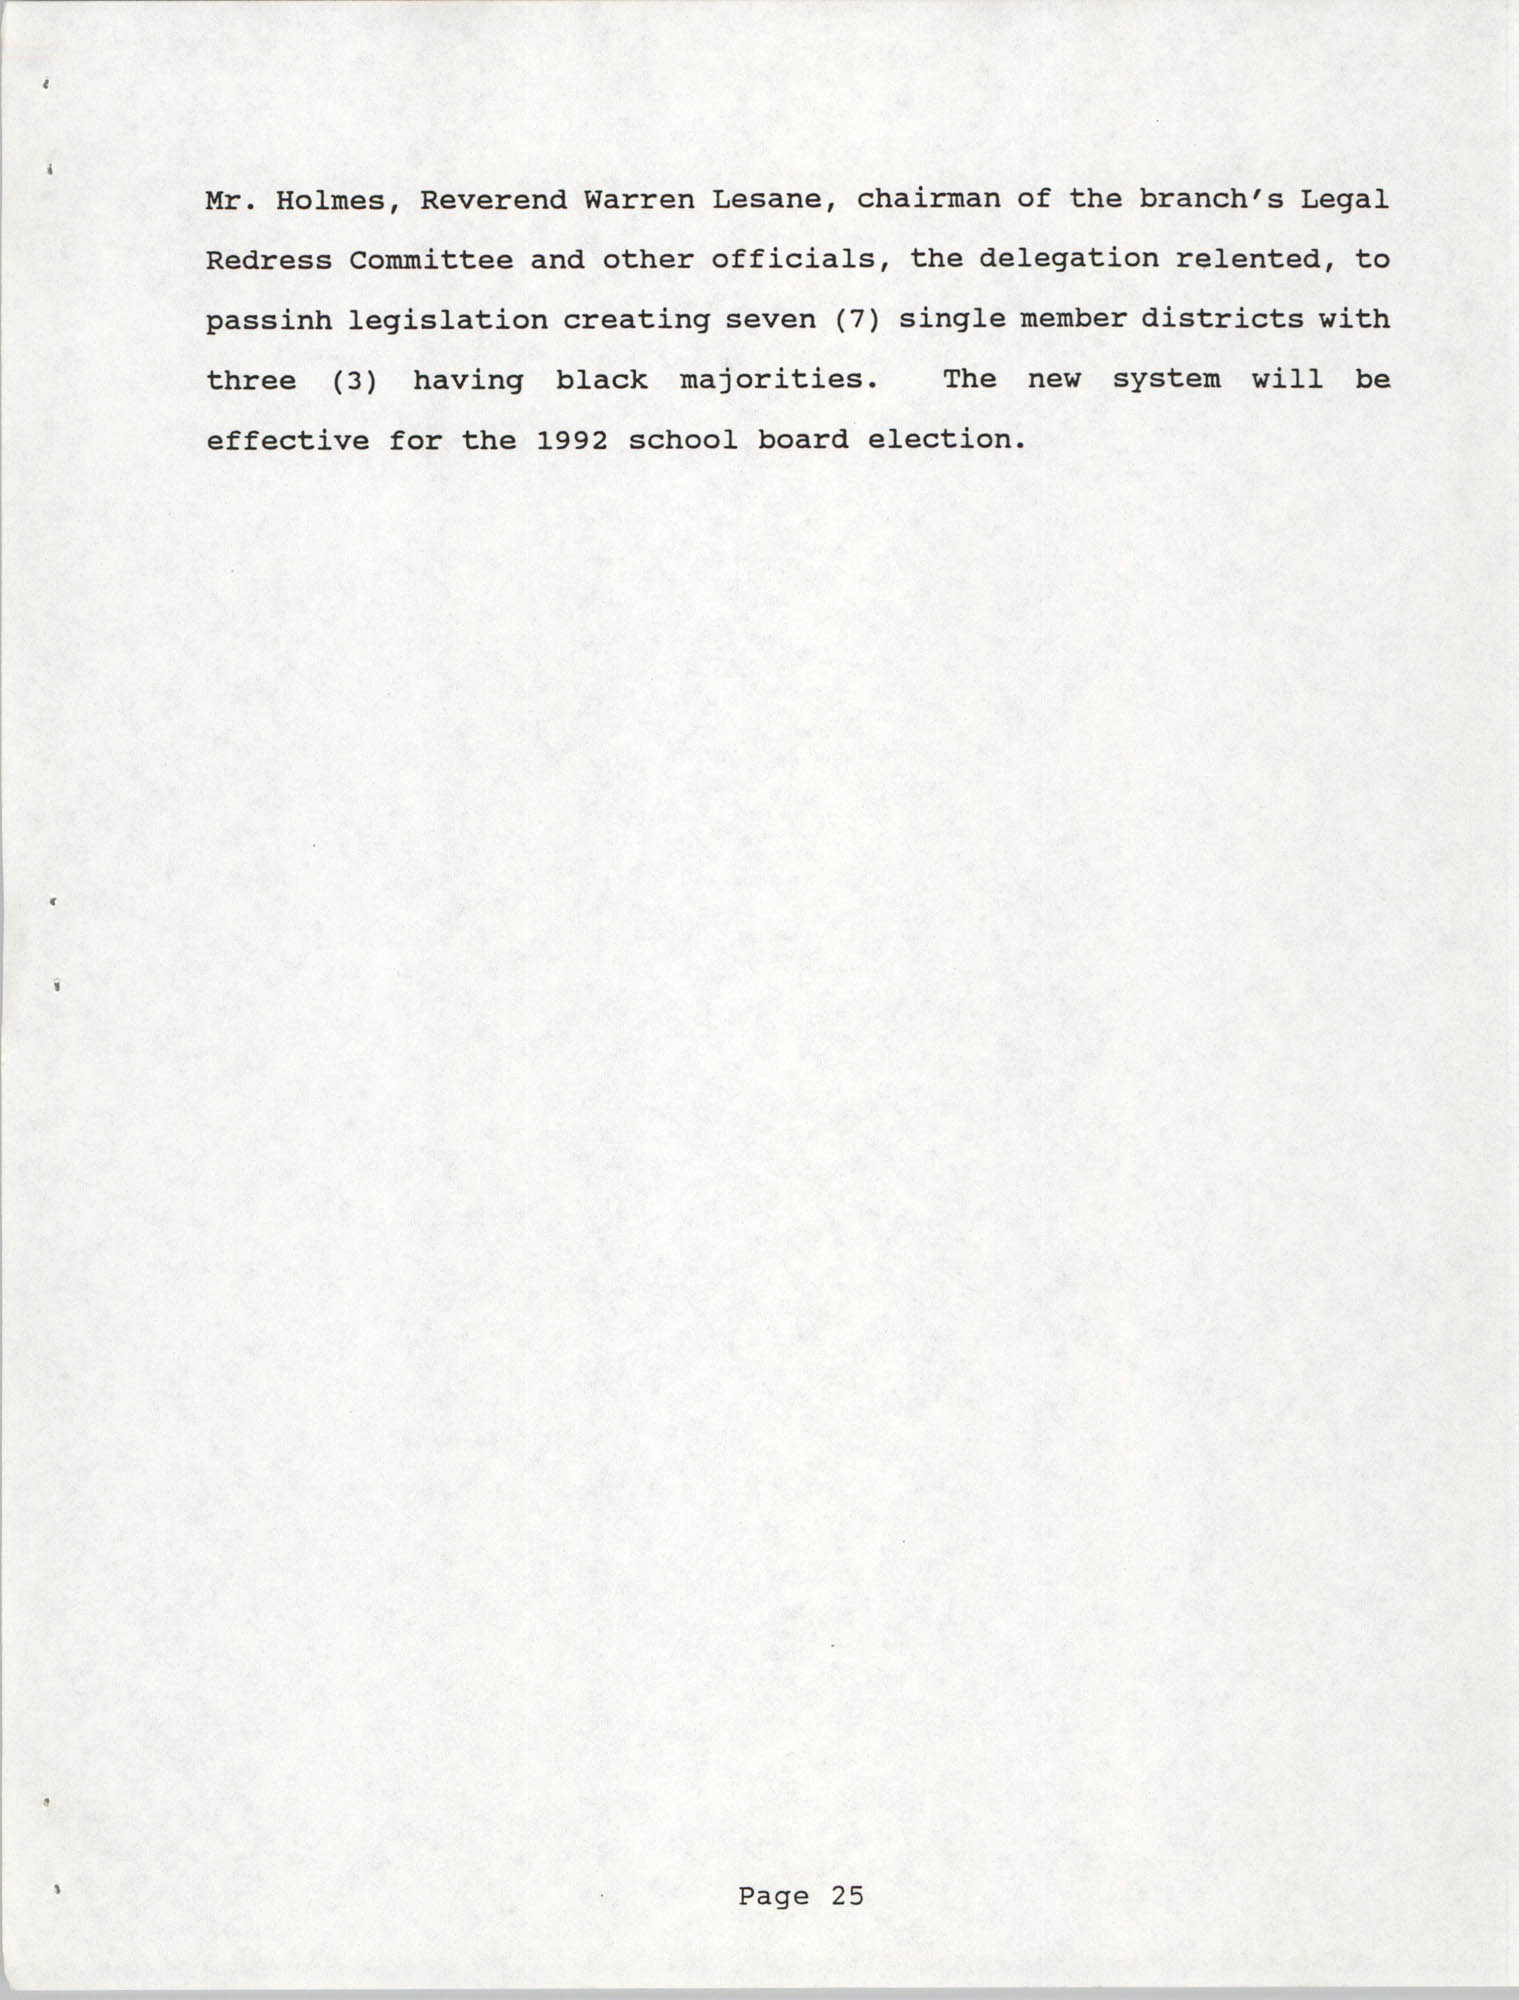 South Carolina Conference of Branches of the NAACP, 1990 Annual Report, Part One, Page 25